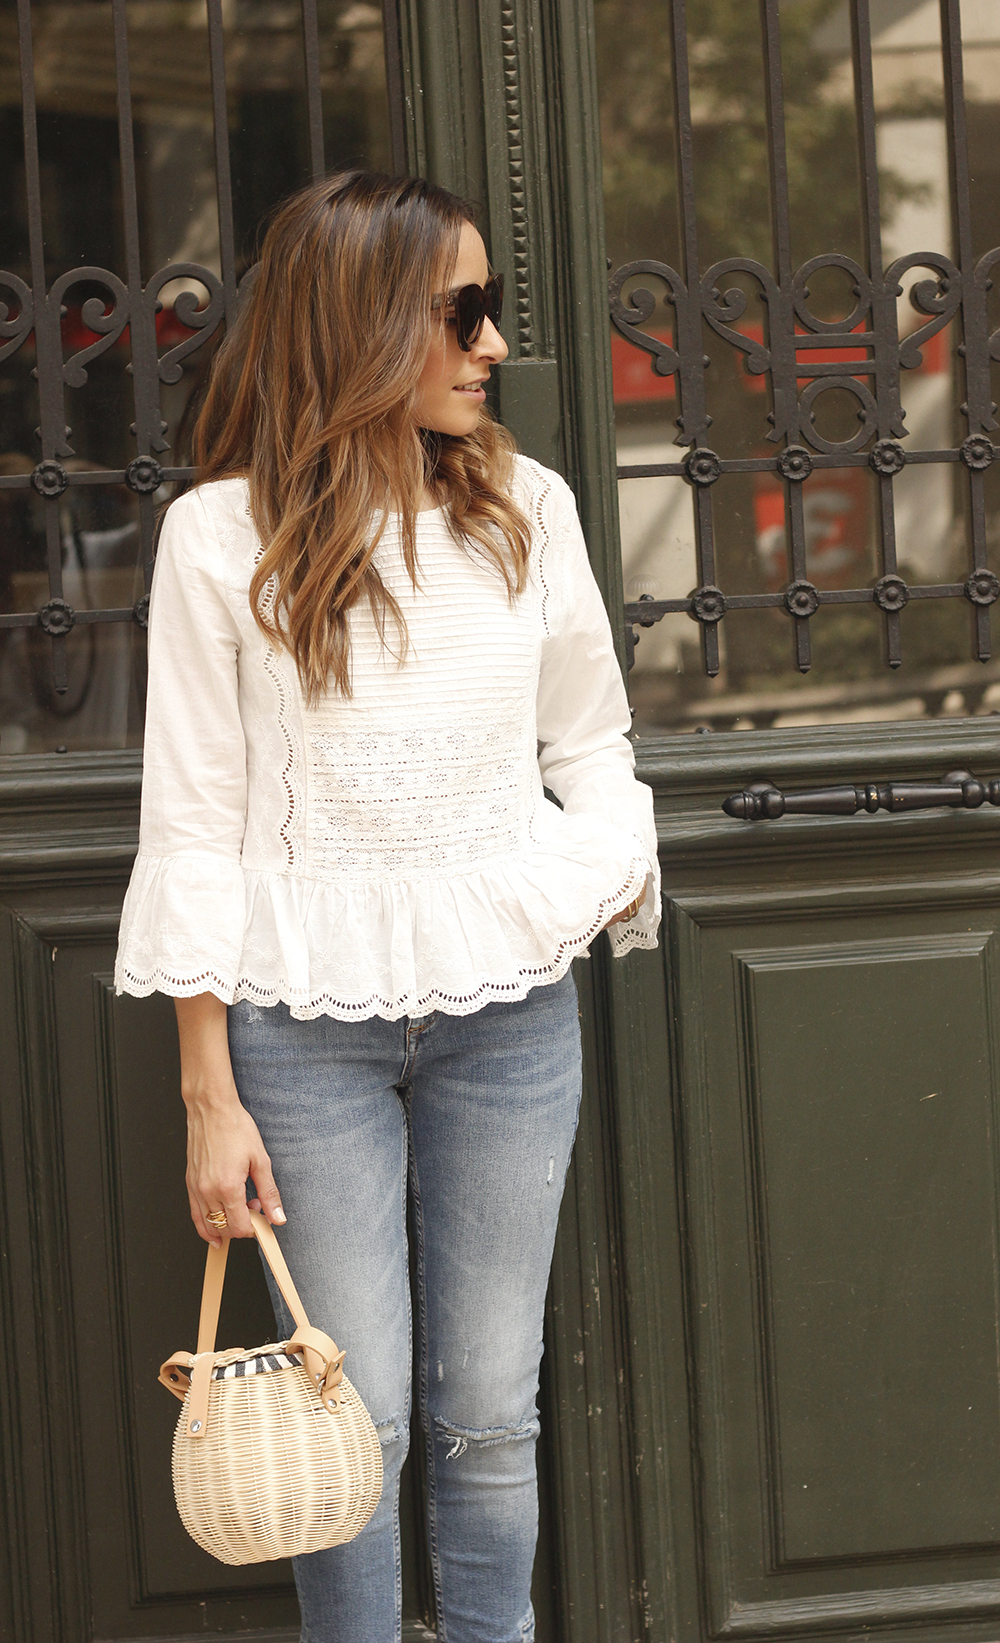 polka dot kitten heels white blouse ripped jeans outfit girl style fashion08